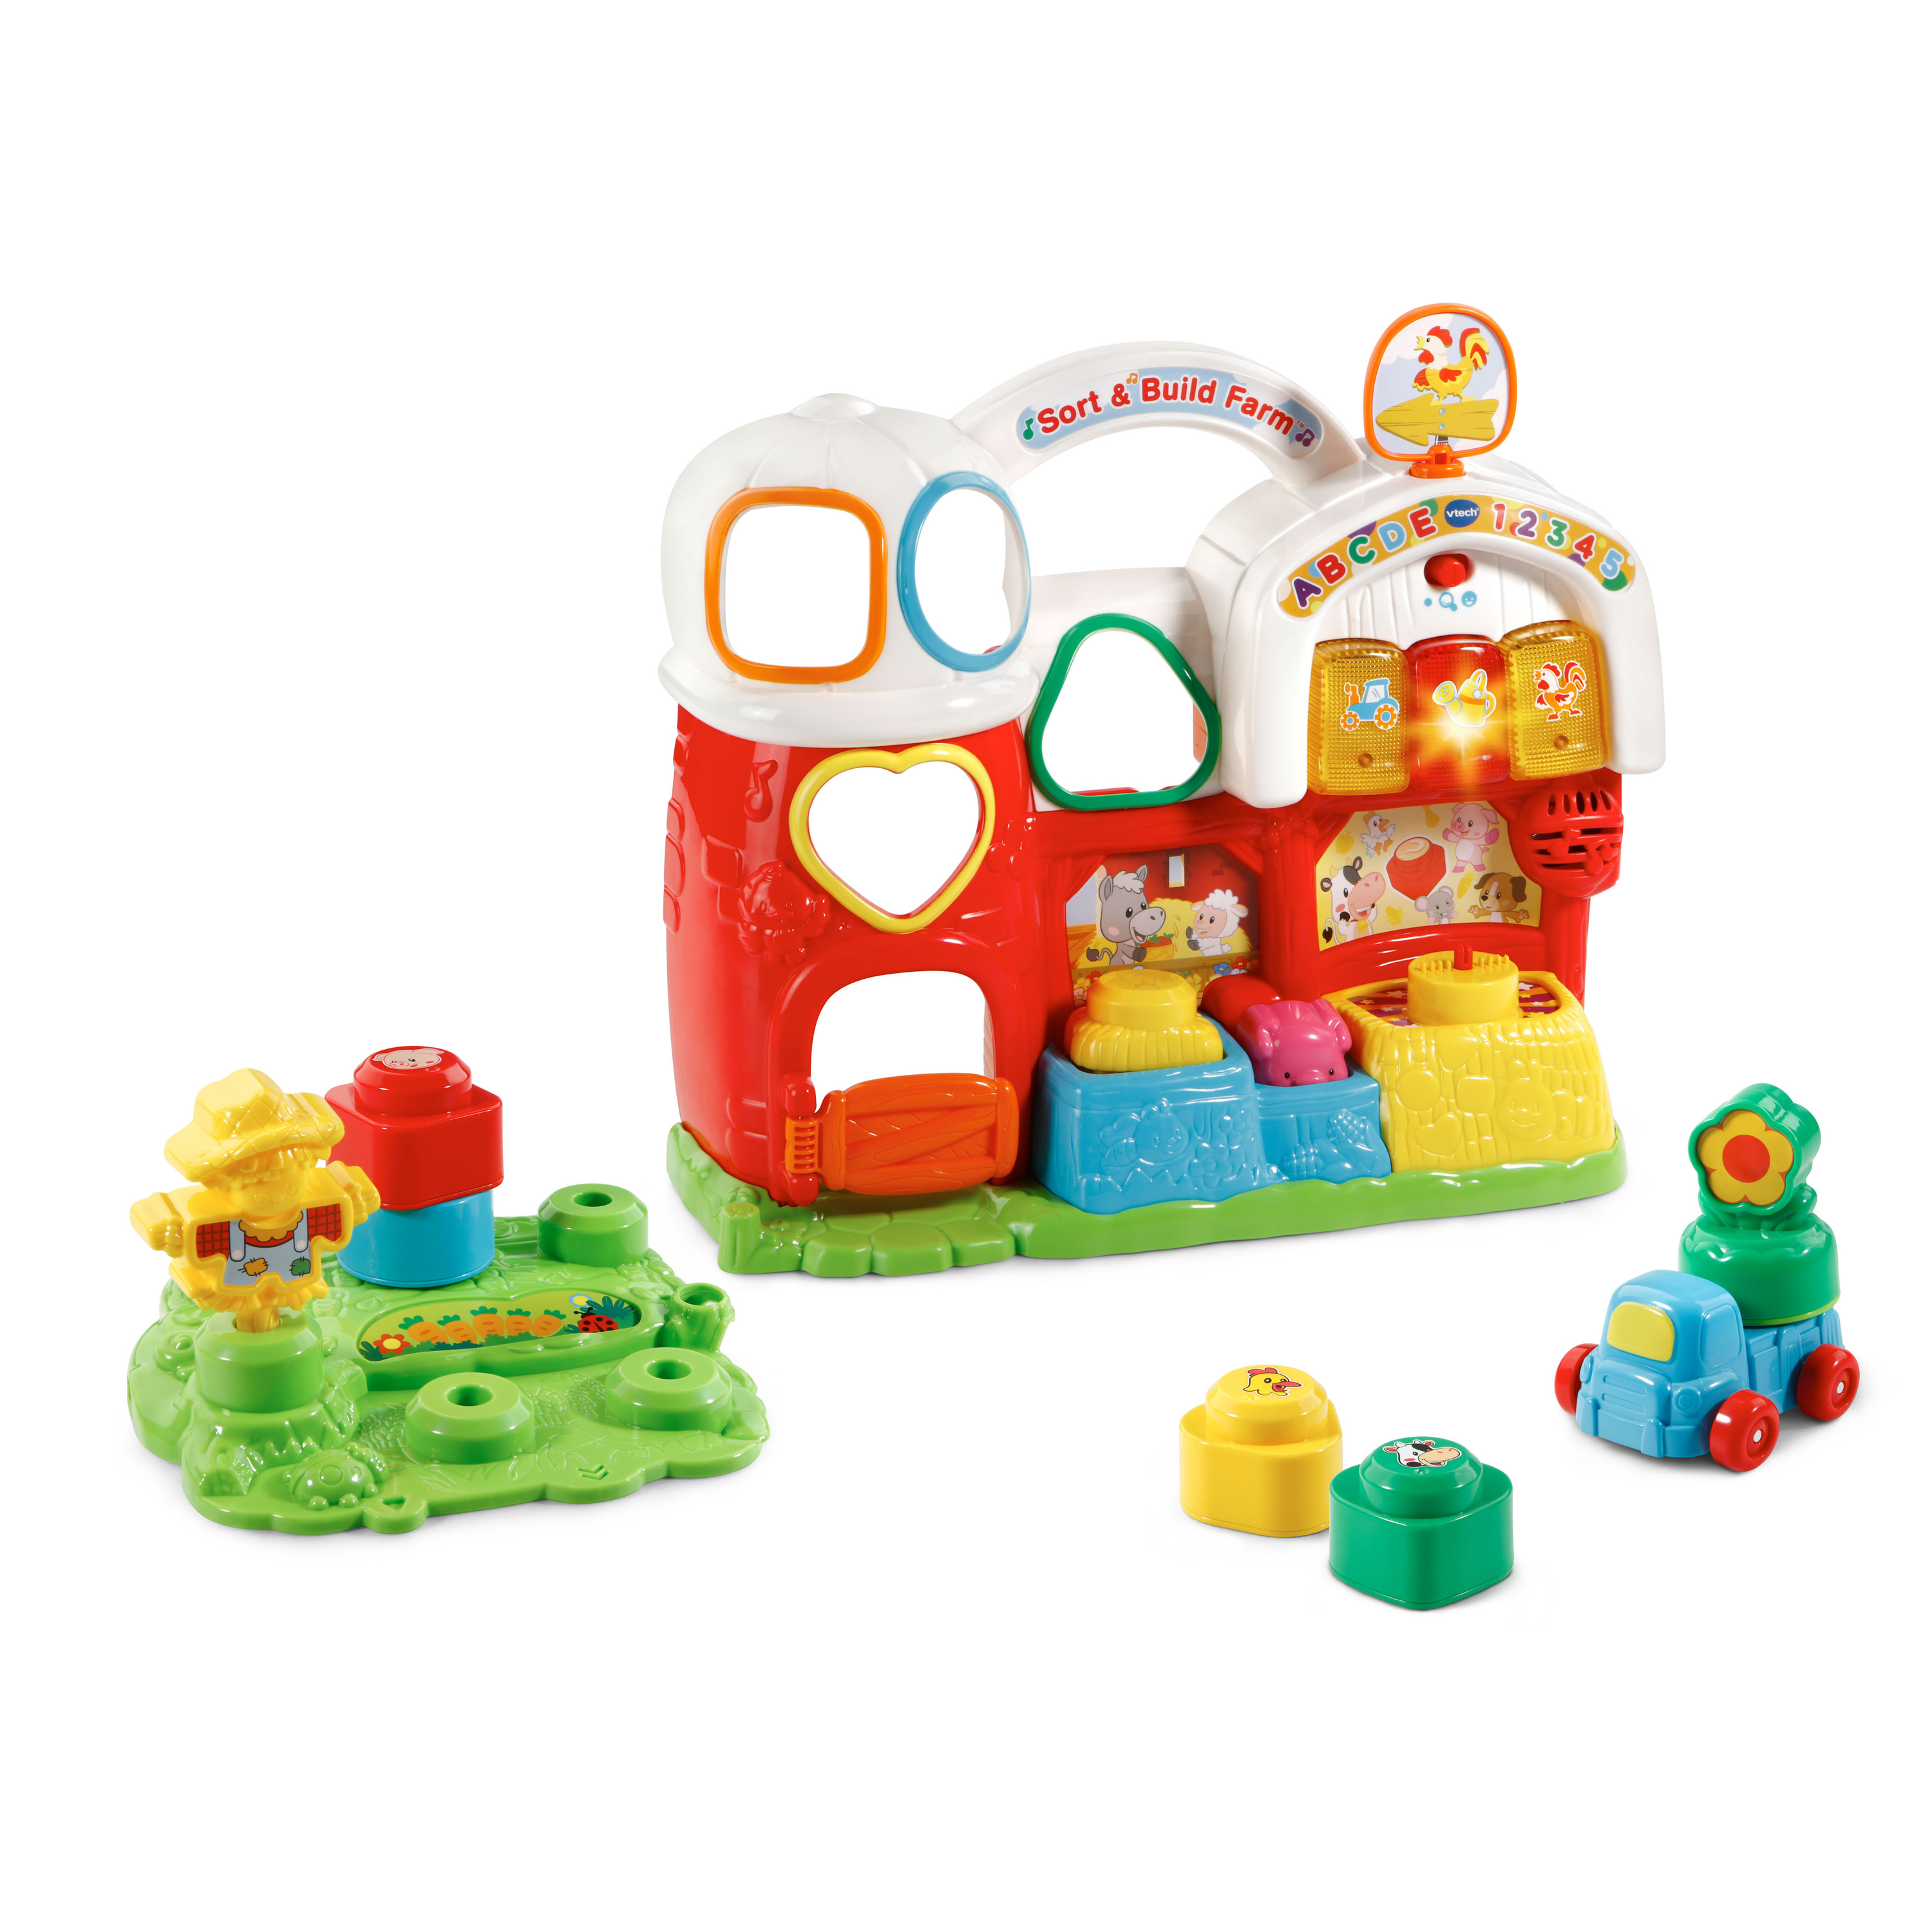 VTech Sort & Build Farm by VTech%C2%AE